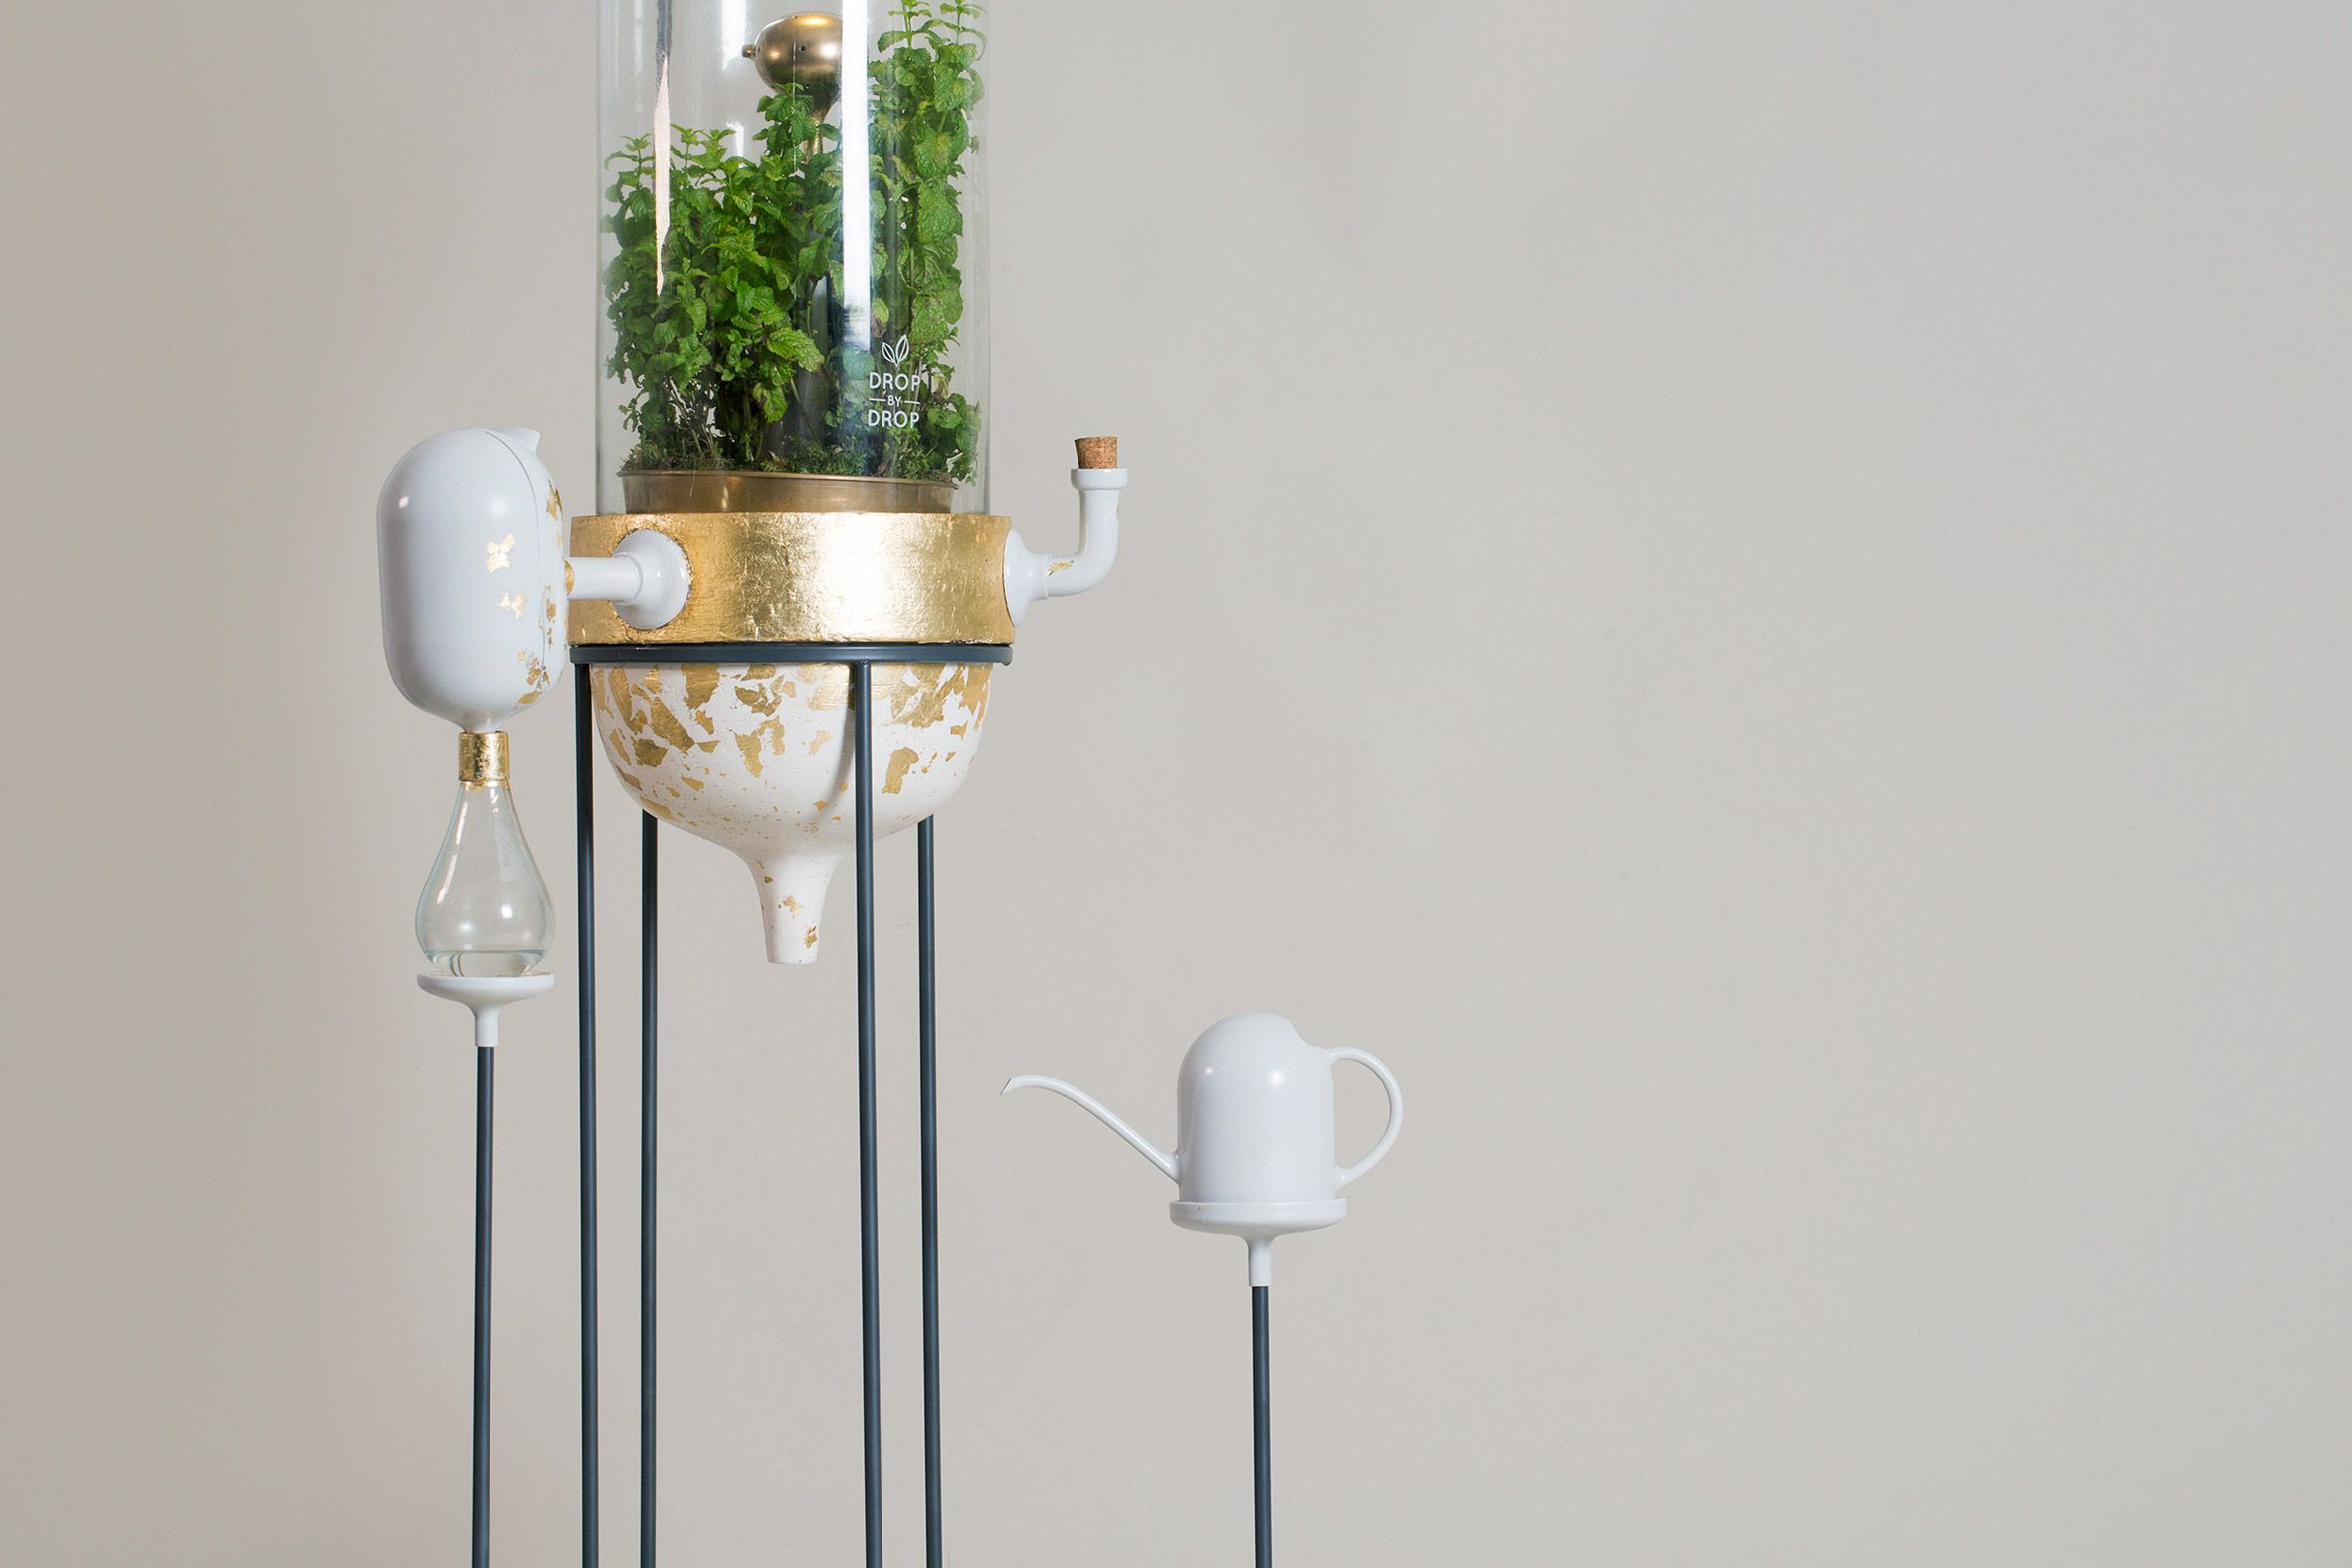 Drop By Drop Is A Plant Based Water Filter That Works As A Mini